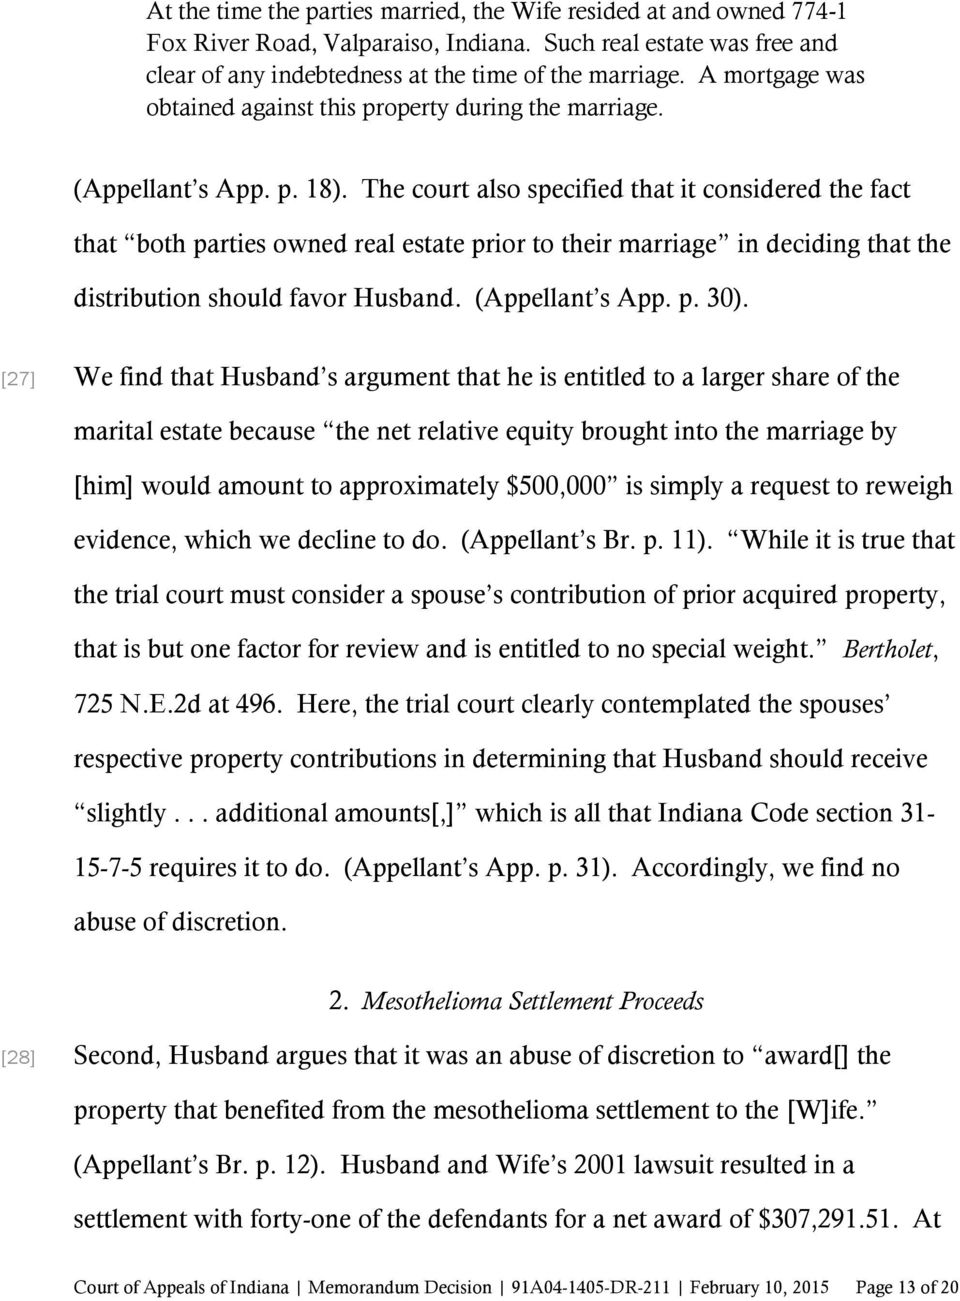 The court also specified that it considered the fact that both parties owned real estate prior to their marriage in deciding that the distribution should favor Husband. (Appellant s App. p. 30).